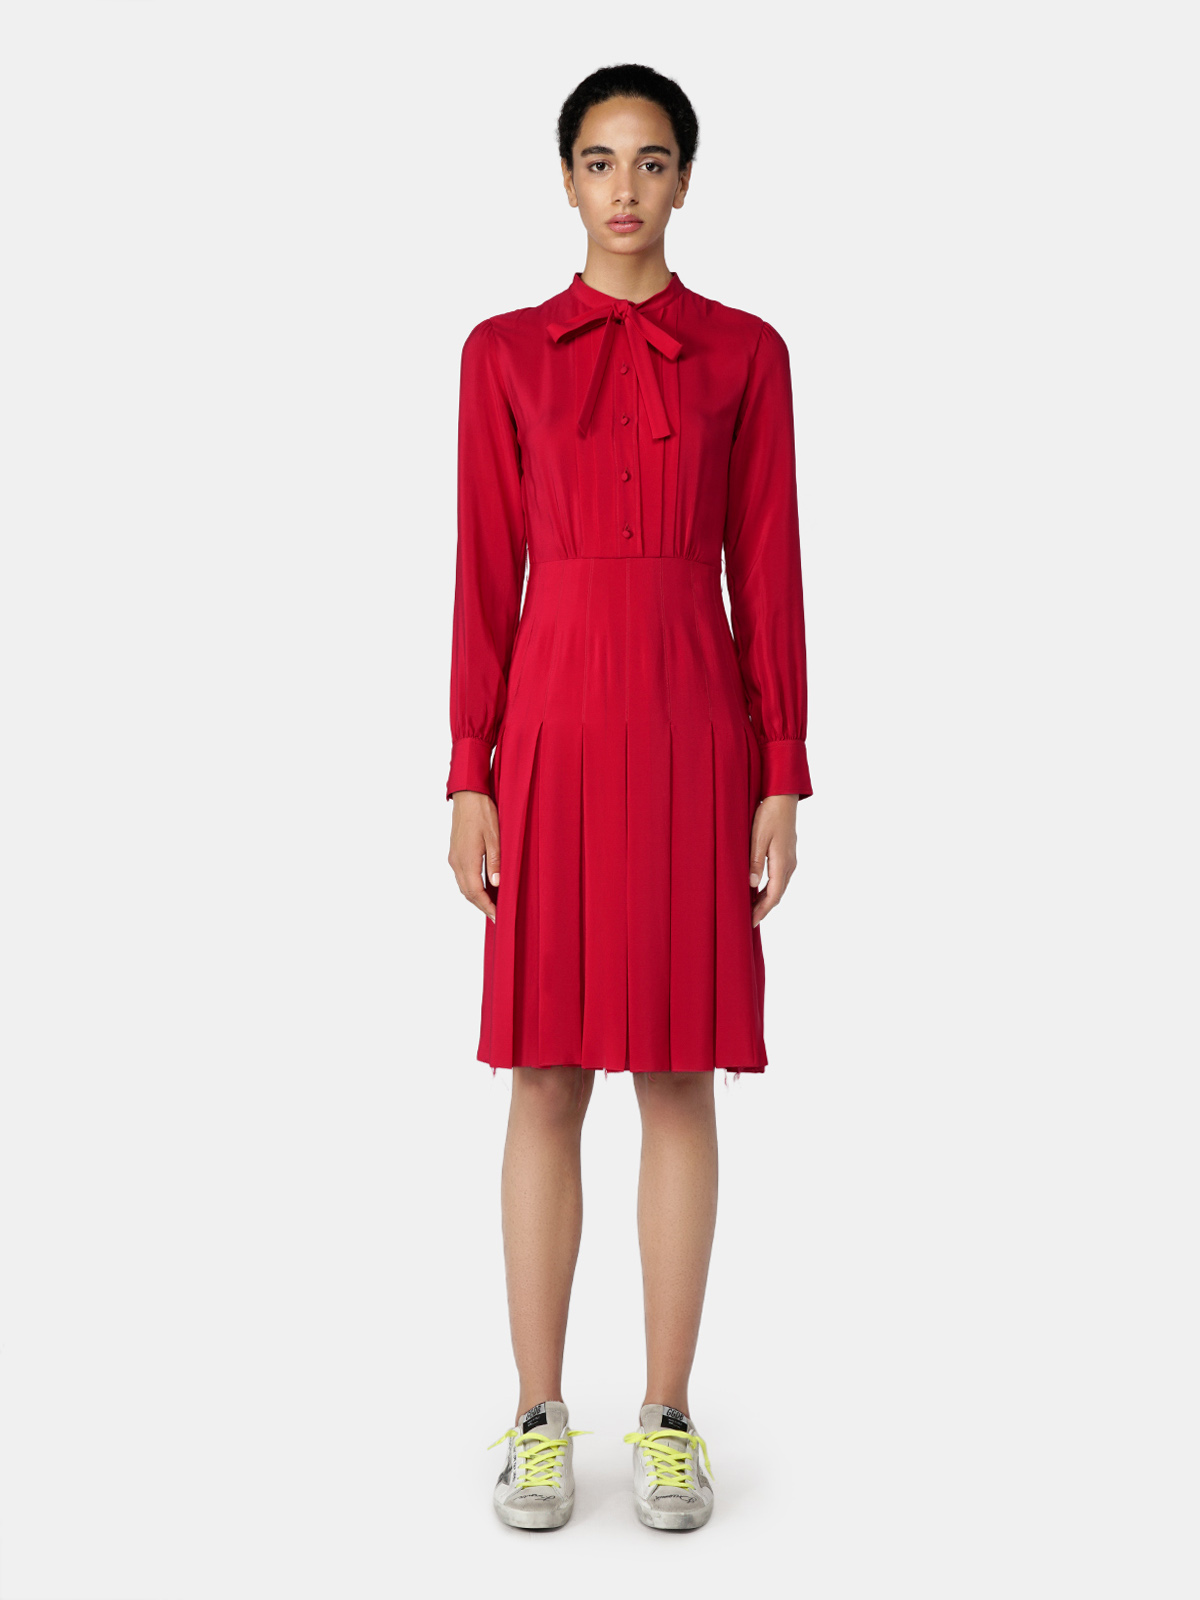 Golden Goose - Red Aida dress with a pleated skirt in